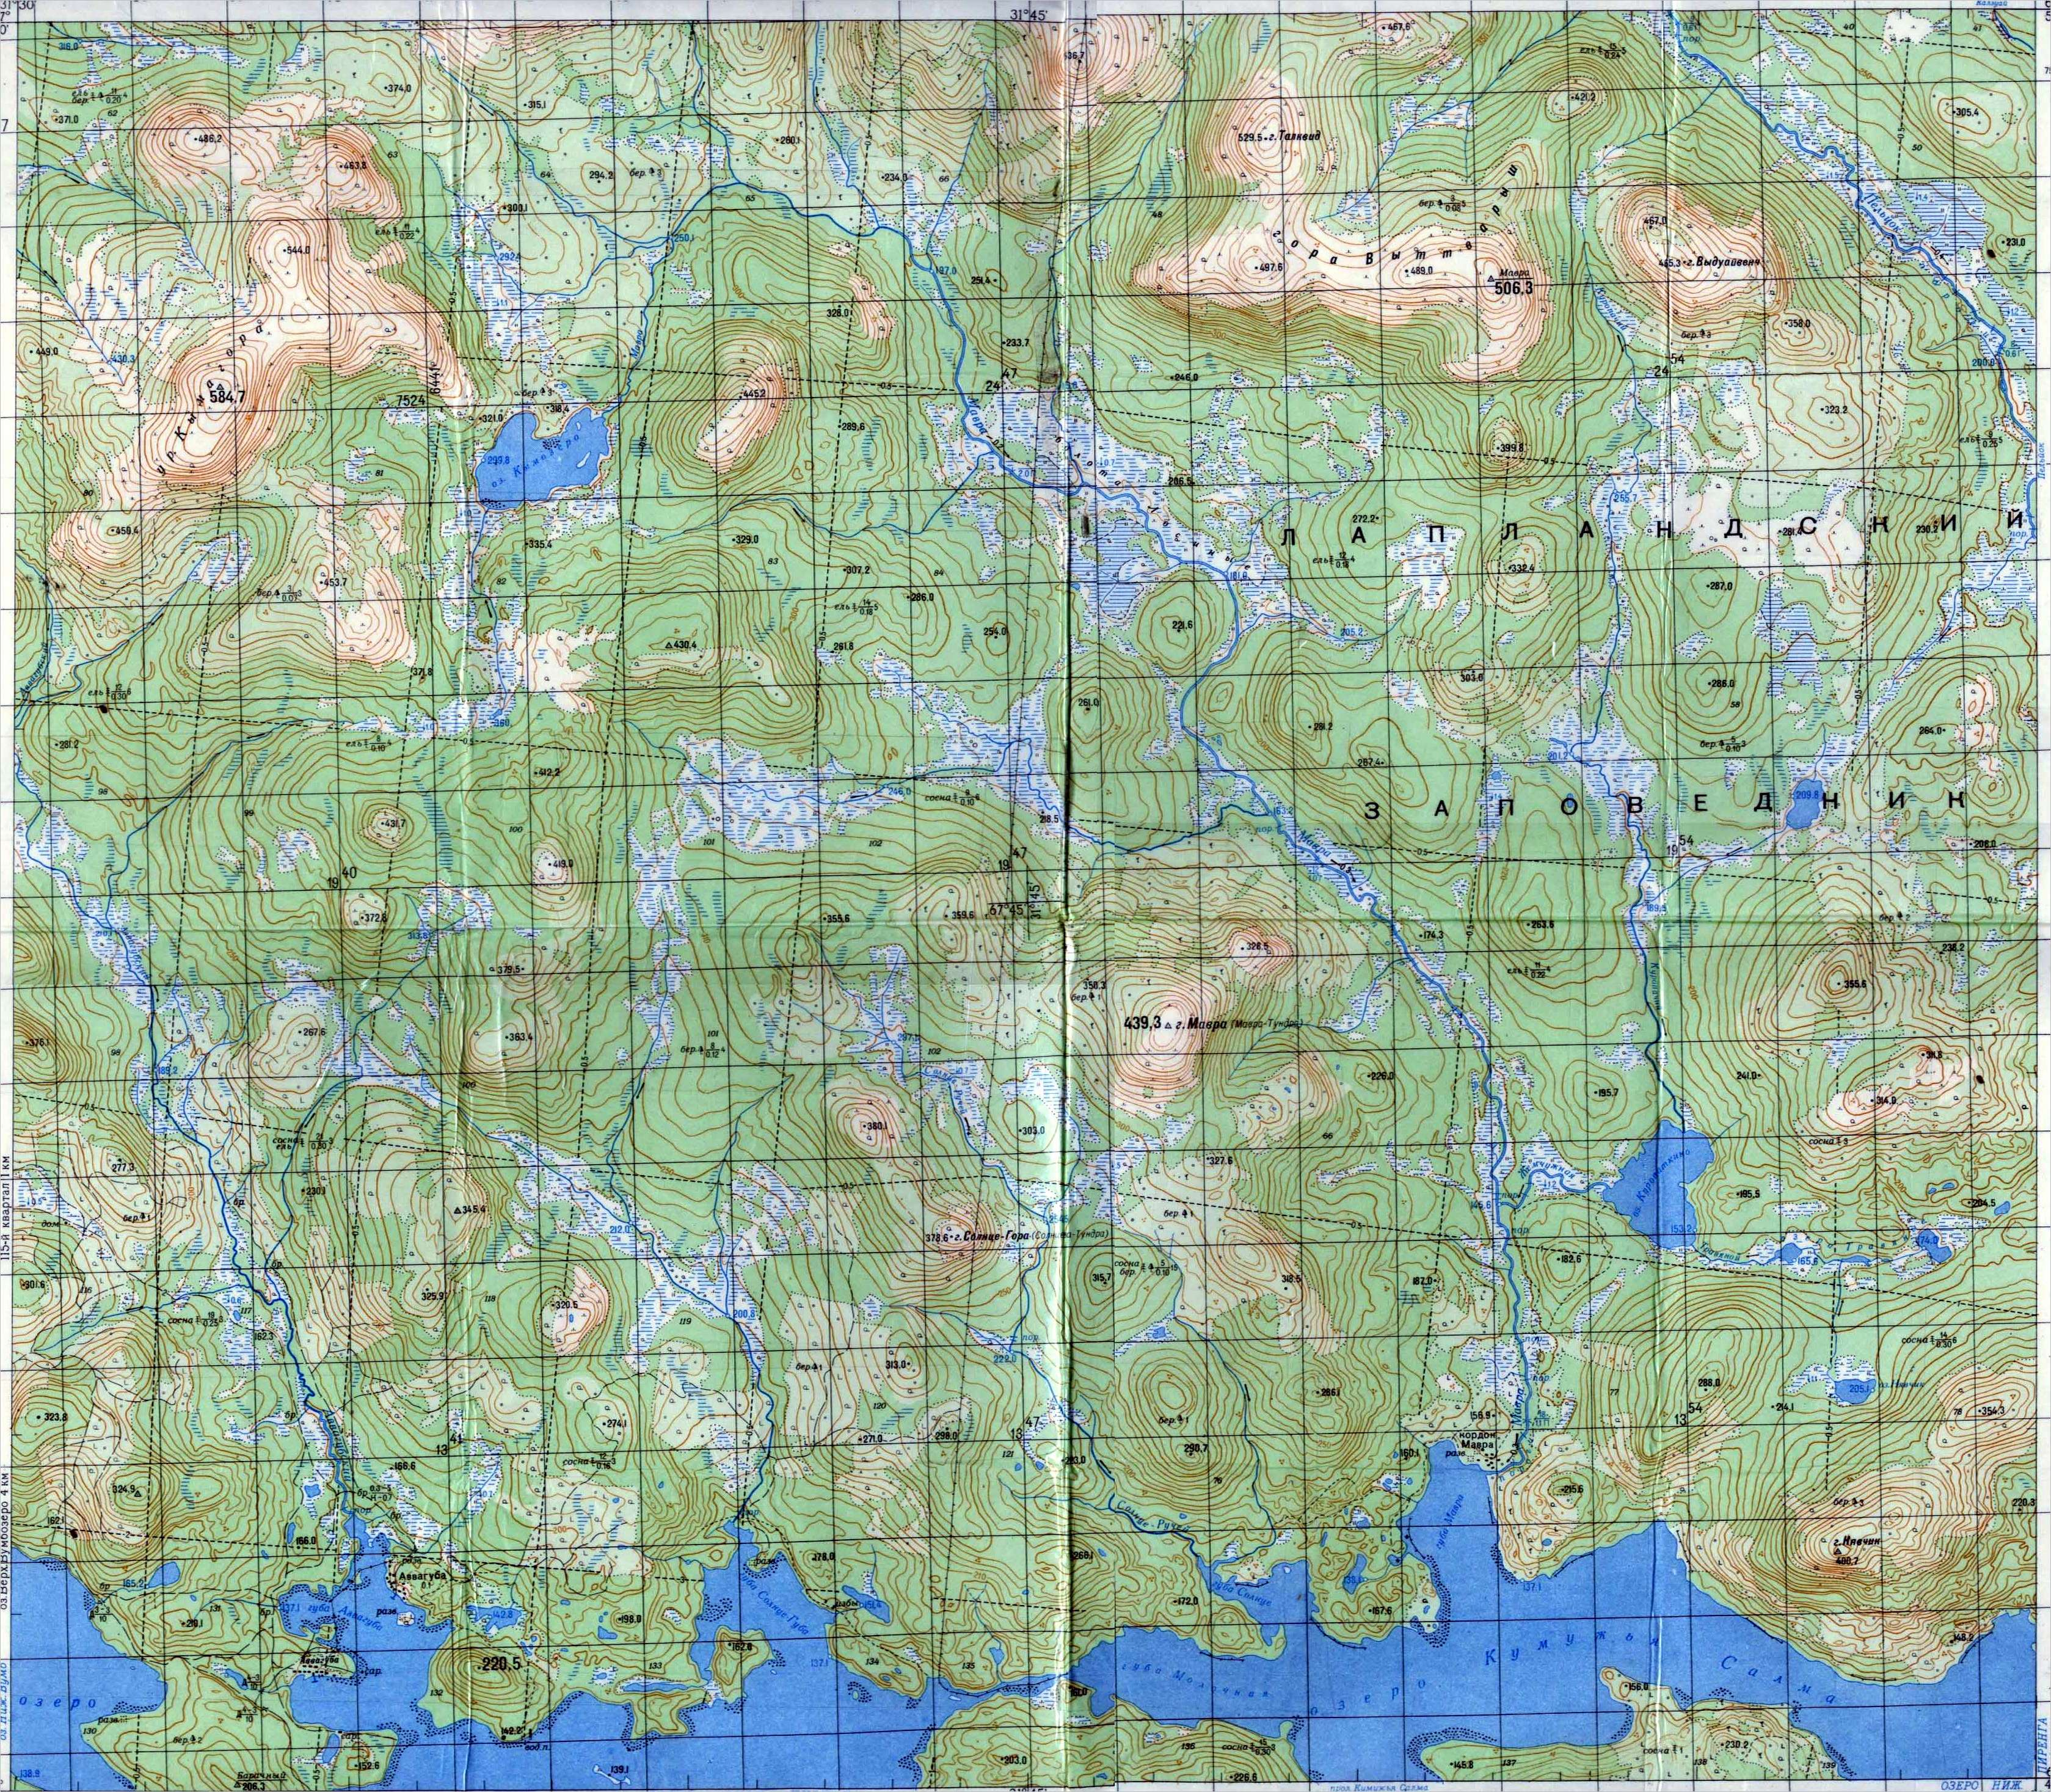 Warriors Path State Park Map: Interactive Map Of The Kola Lapland Nature Reserve (4